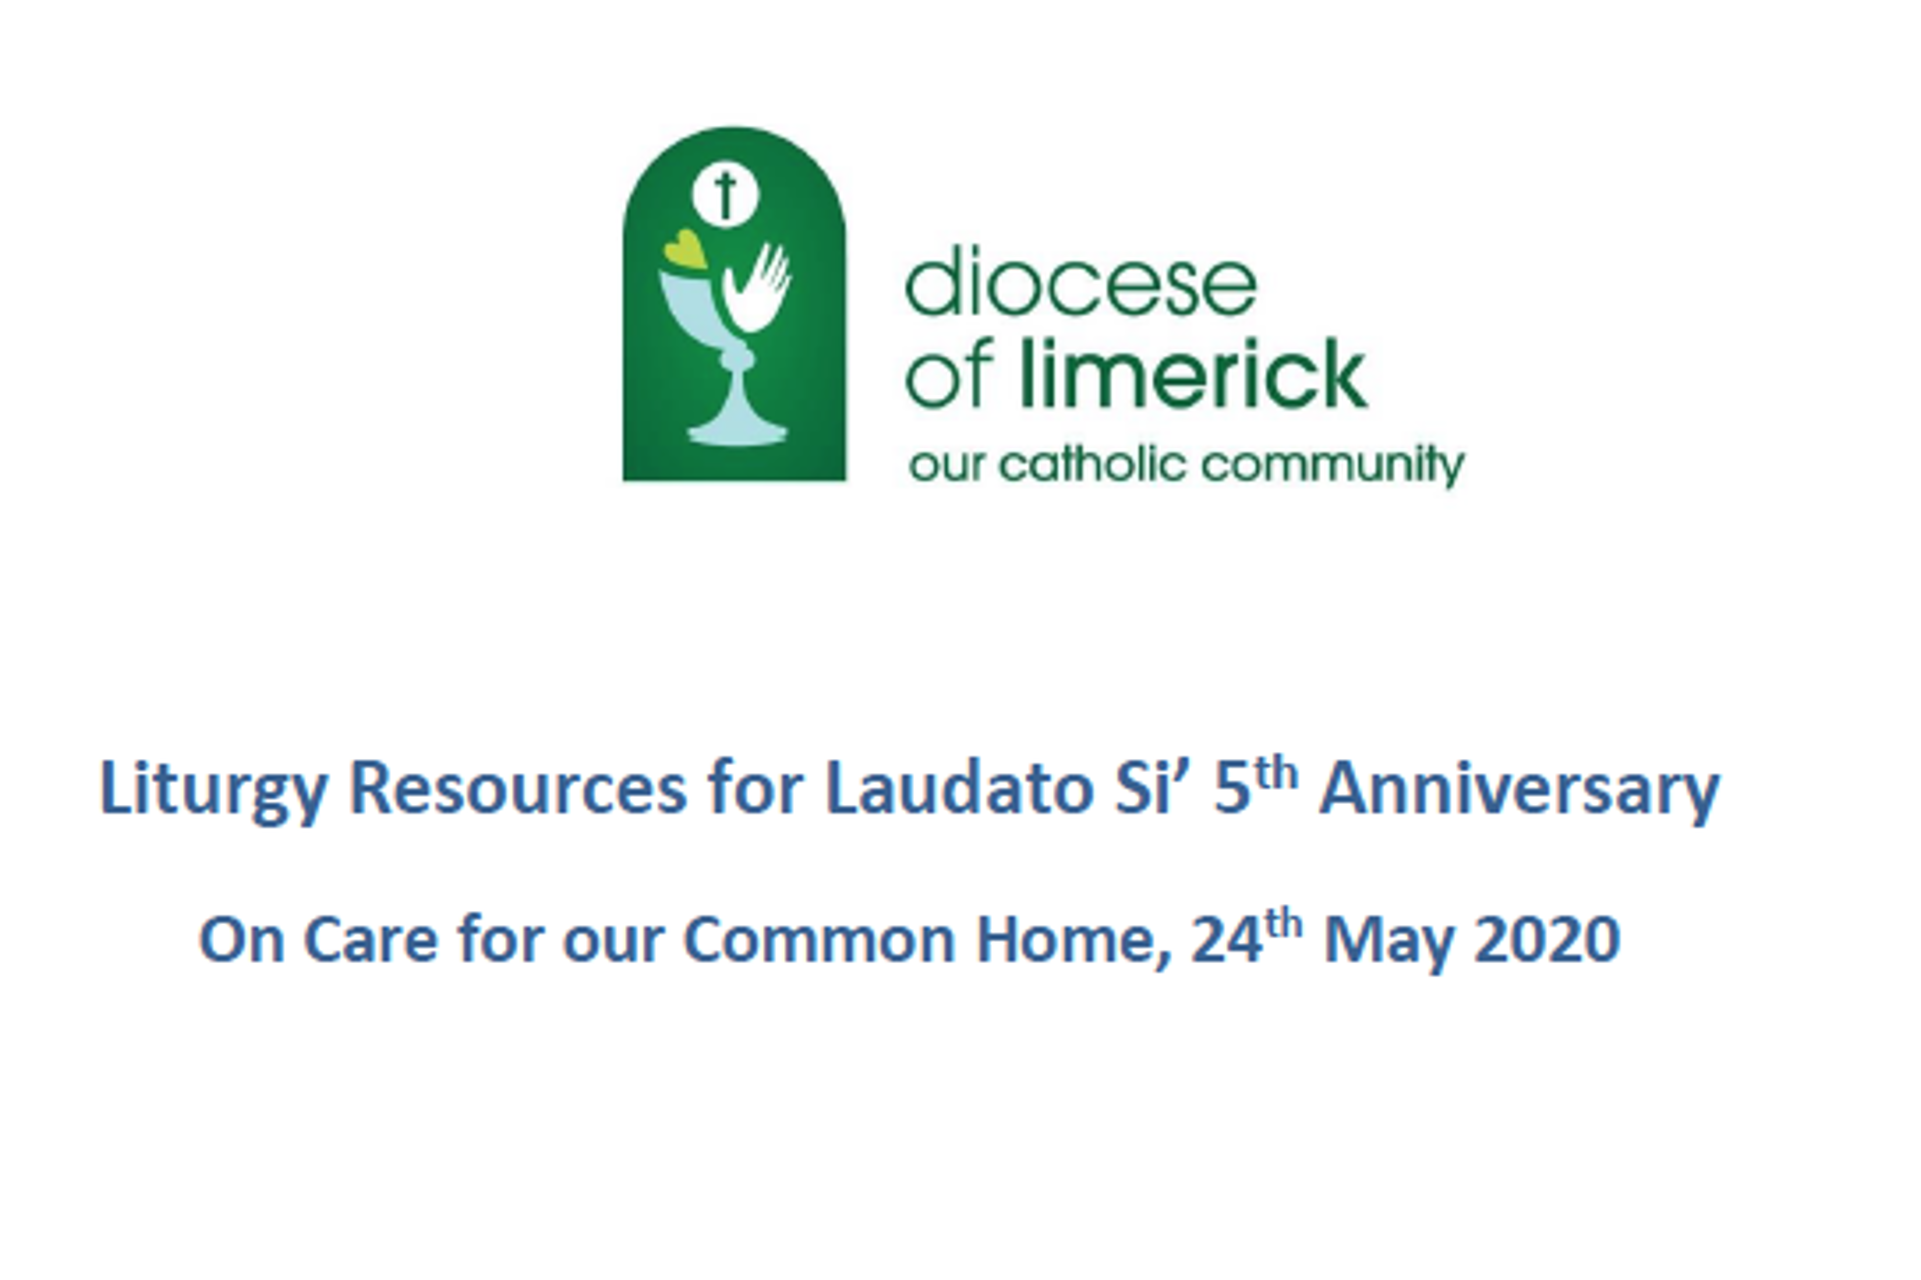 Liturgy Resources for Laudato Si' 5th Anniversary